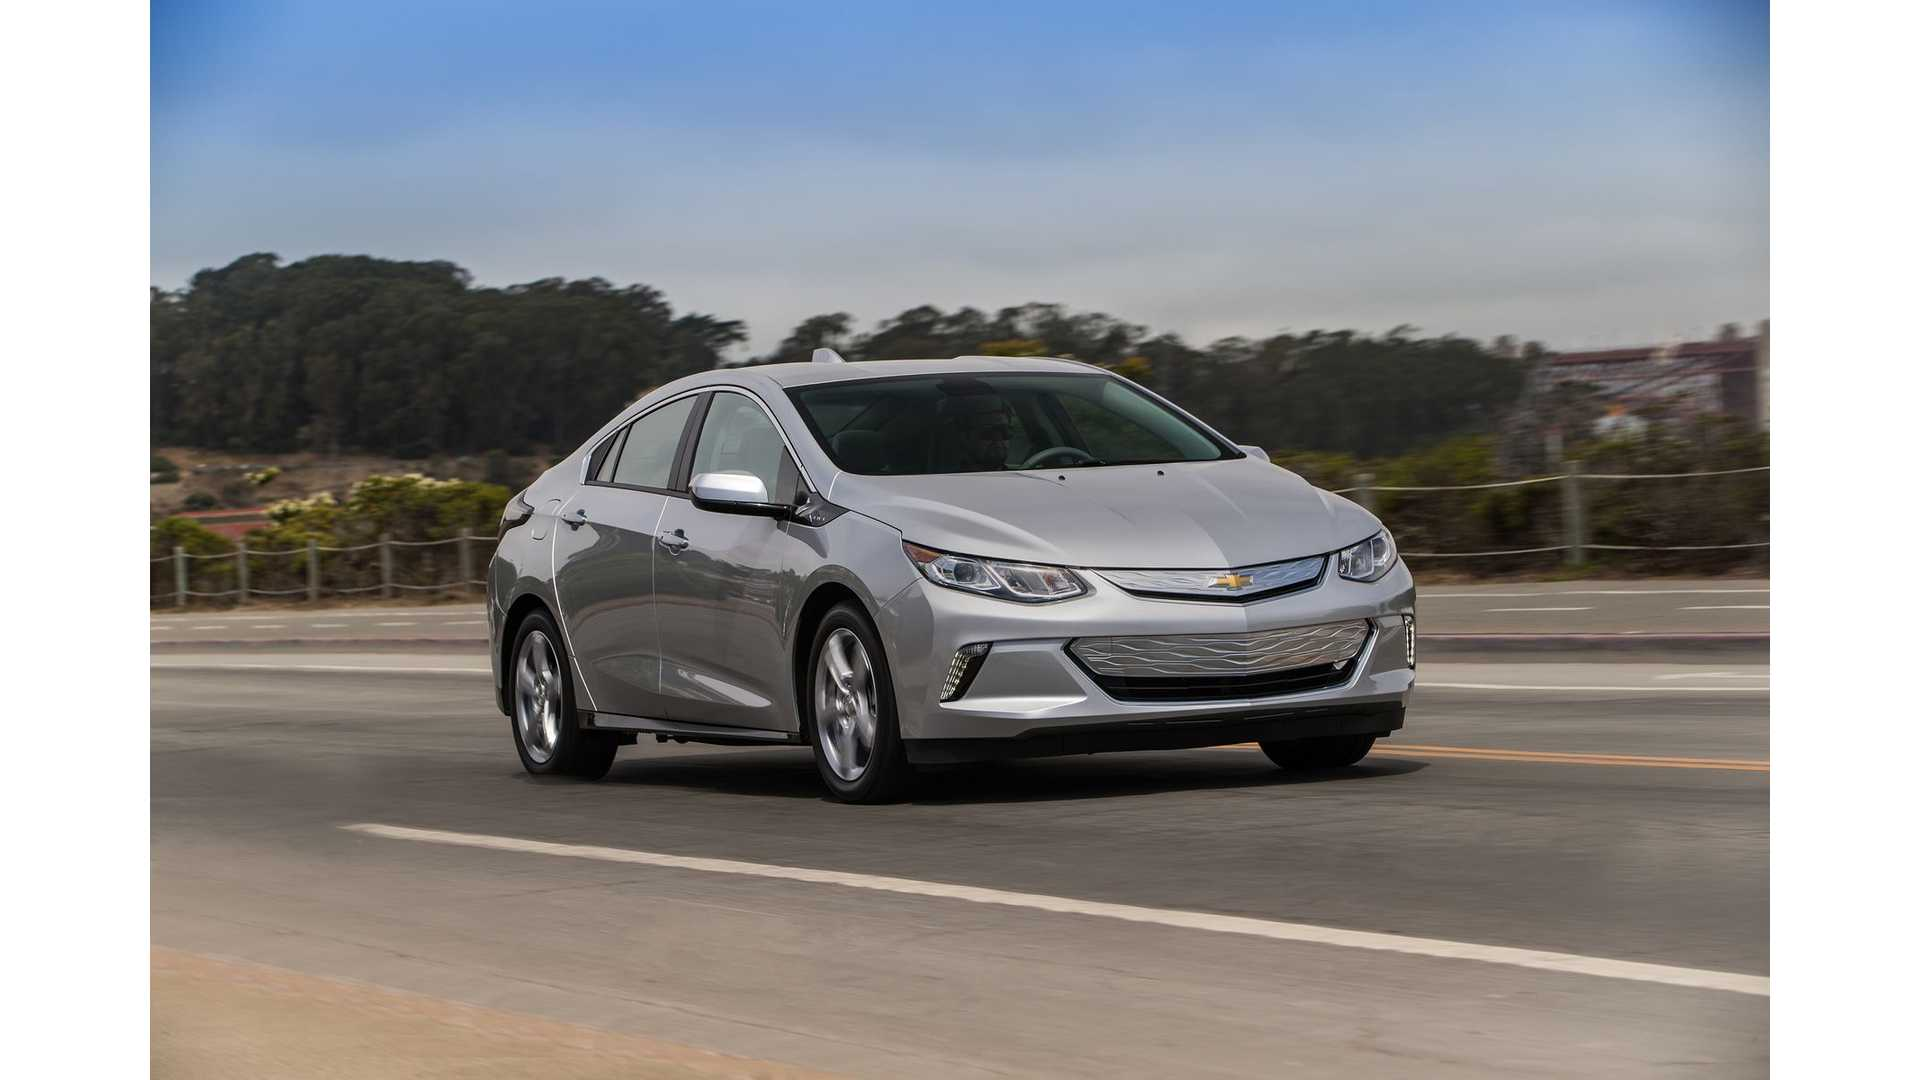 70 All New Best Chevrolet 2019 Volt Concept Images for Best Chevrolet 2019 Volt Concept